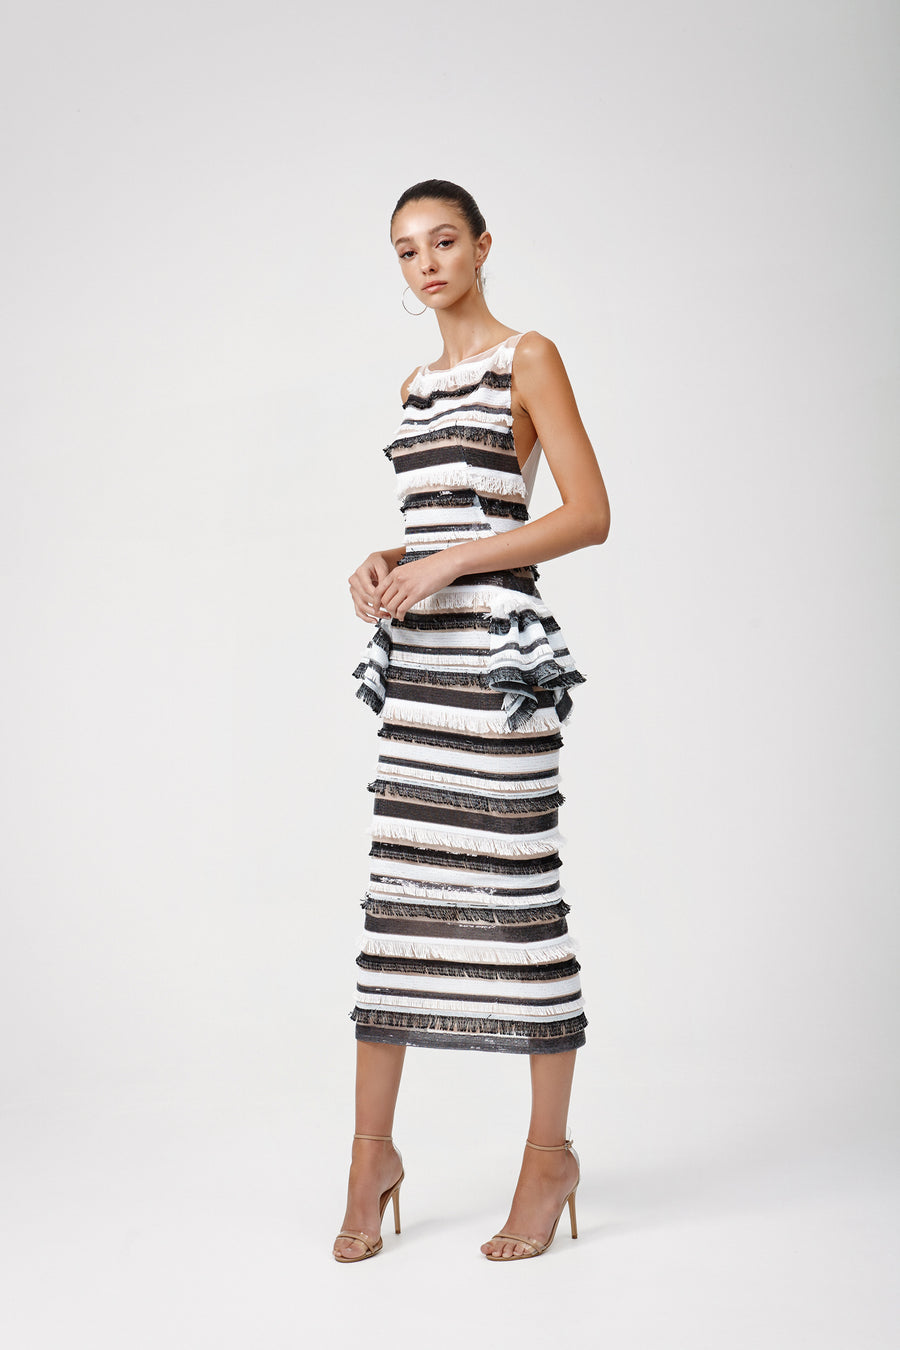 Genevive Dress - Black/White